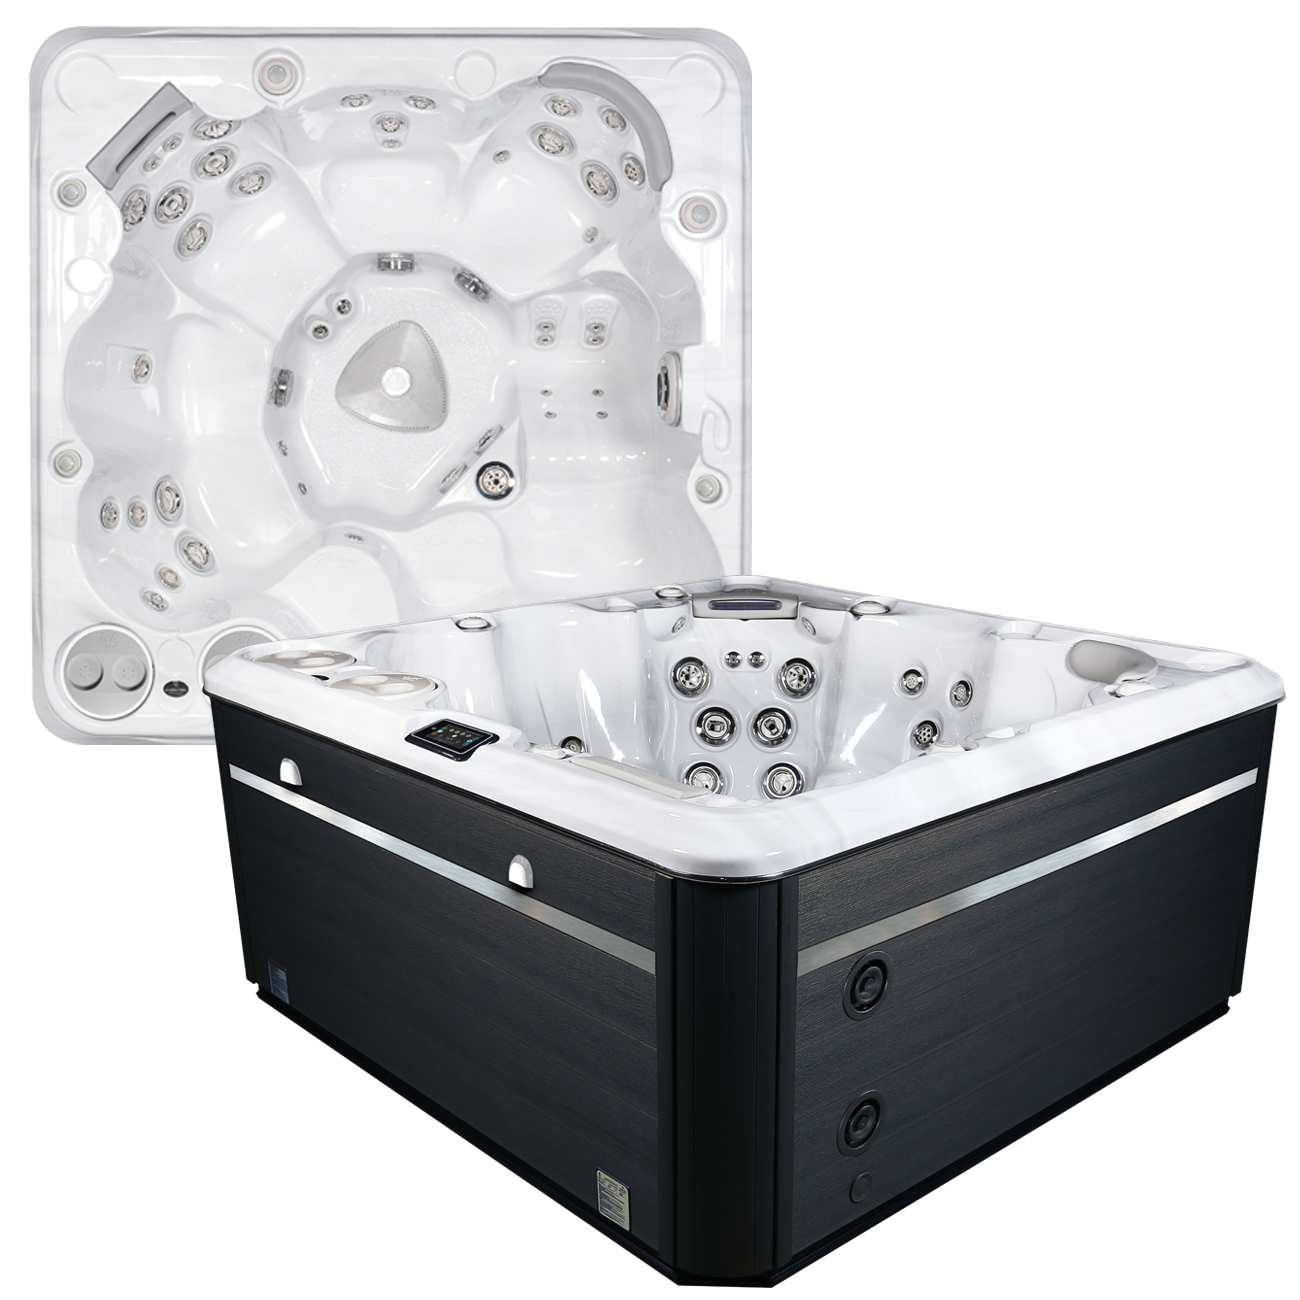 Hydropool Self-Cleaning Hot Tubs